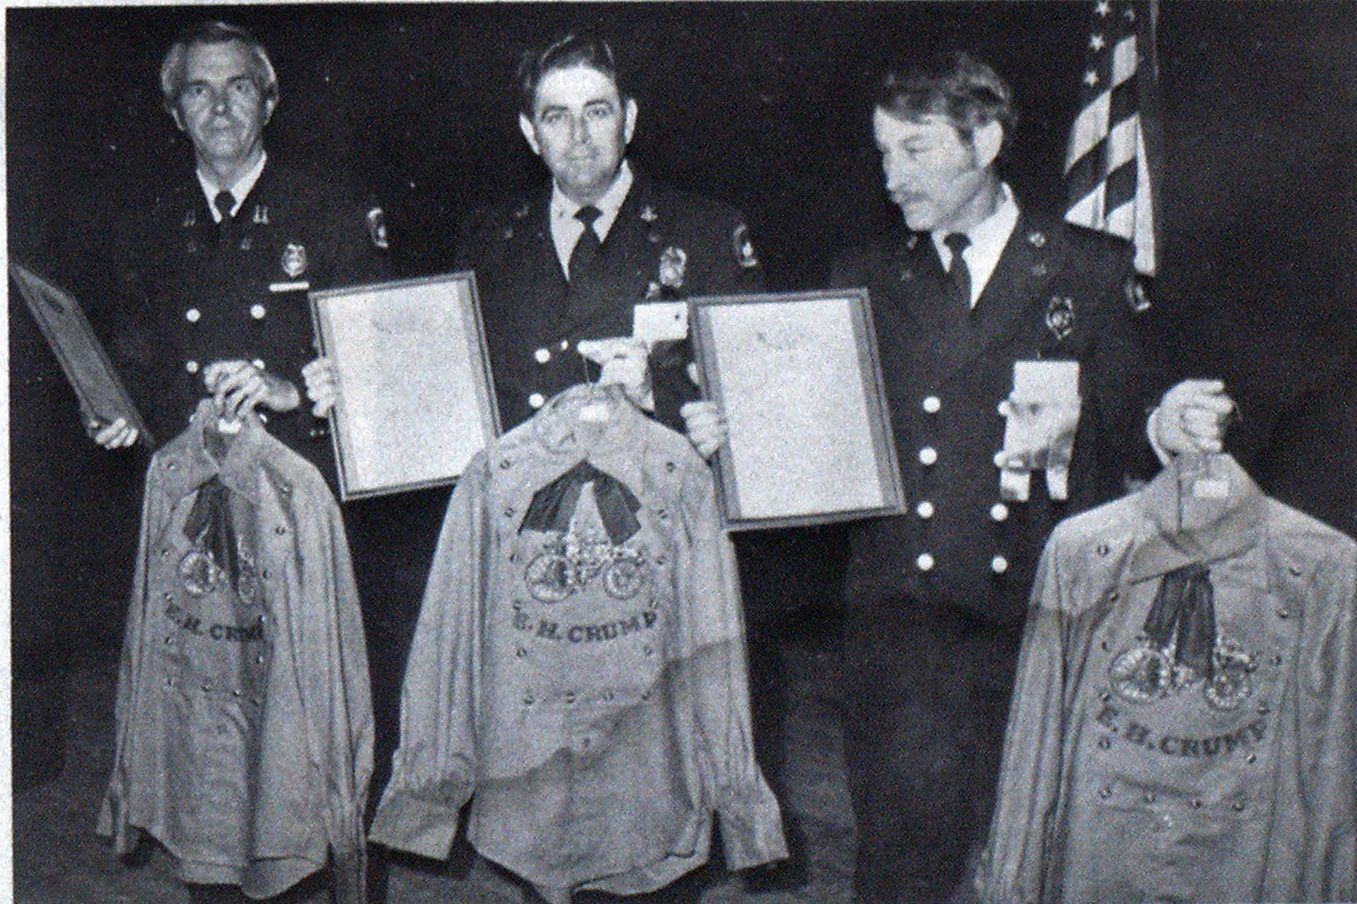 Old-style shirts are held by, from left, Captain Edward Xiques and District Chiefs D. G. Goolsby and A. O. Smith, Memphis Fire Department officers who helped display the old Memphis steamer, E. W. Crump, at a Missouri fire conference. The shirts were in appreciation of their work